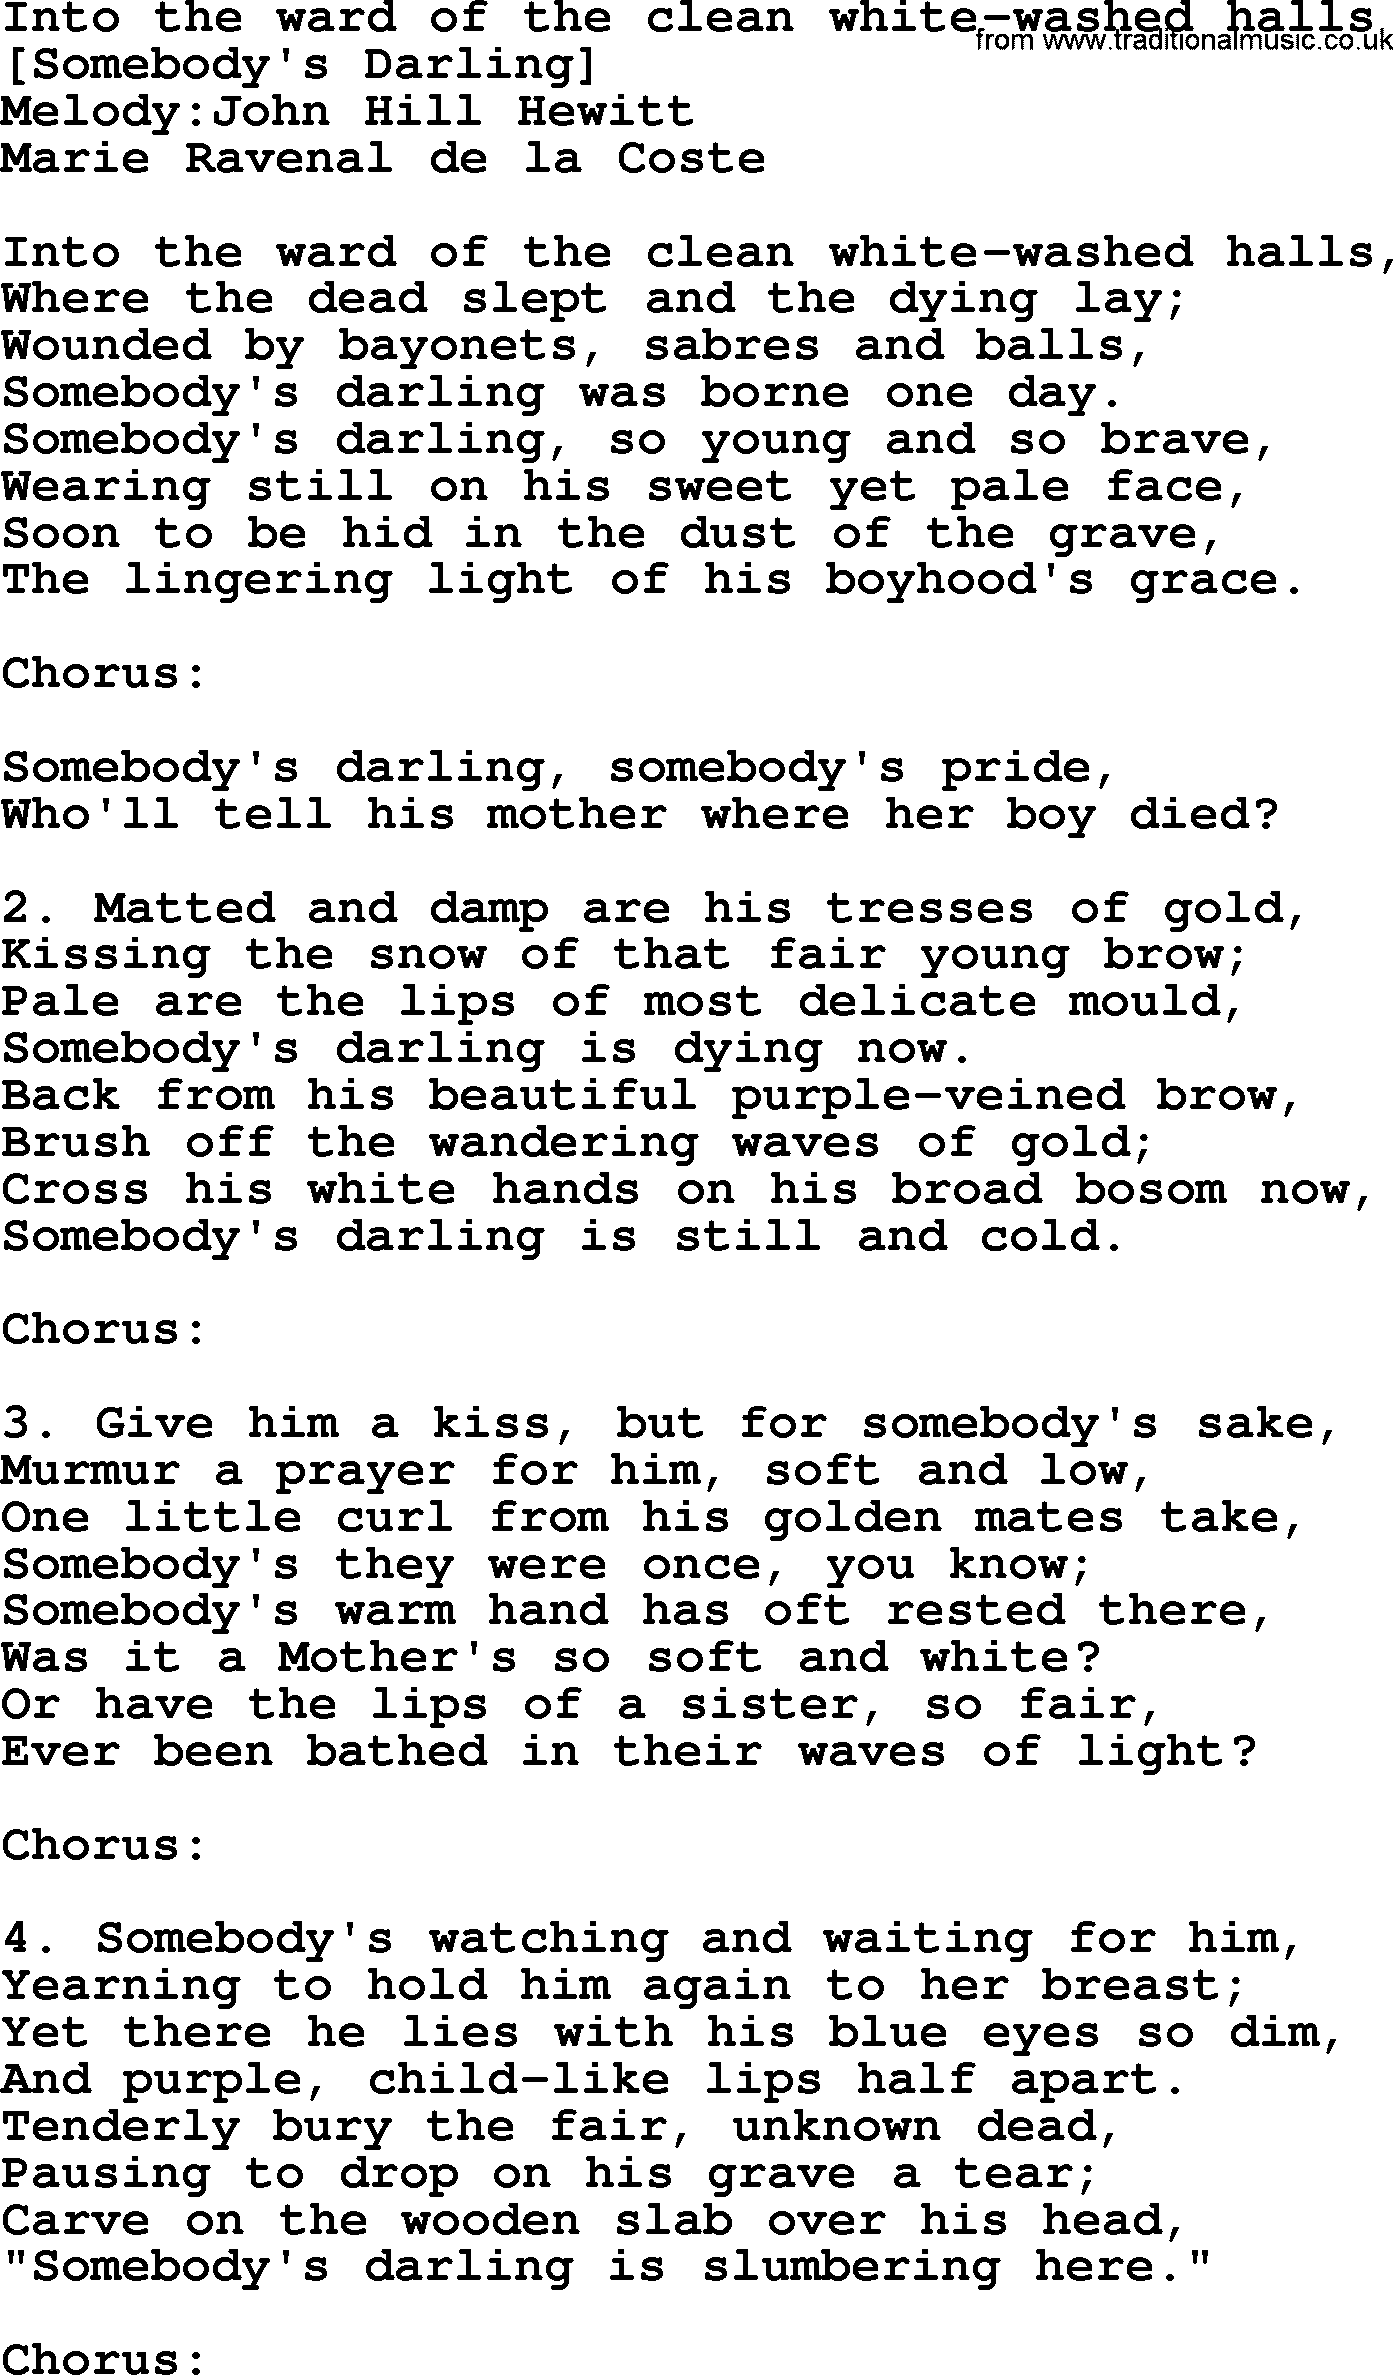 Old american song lyrics for into the ward of the clean for Music to clean to